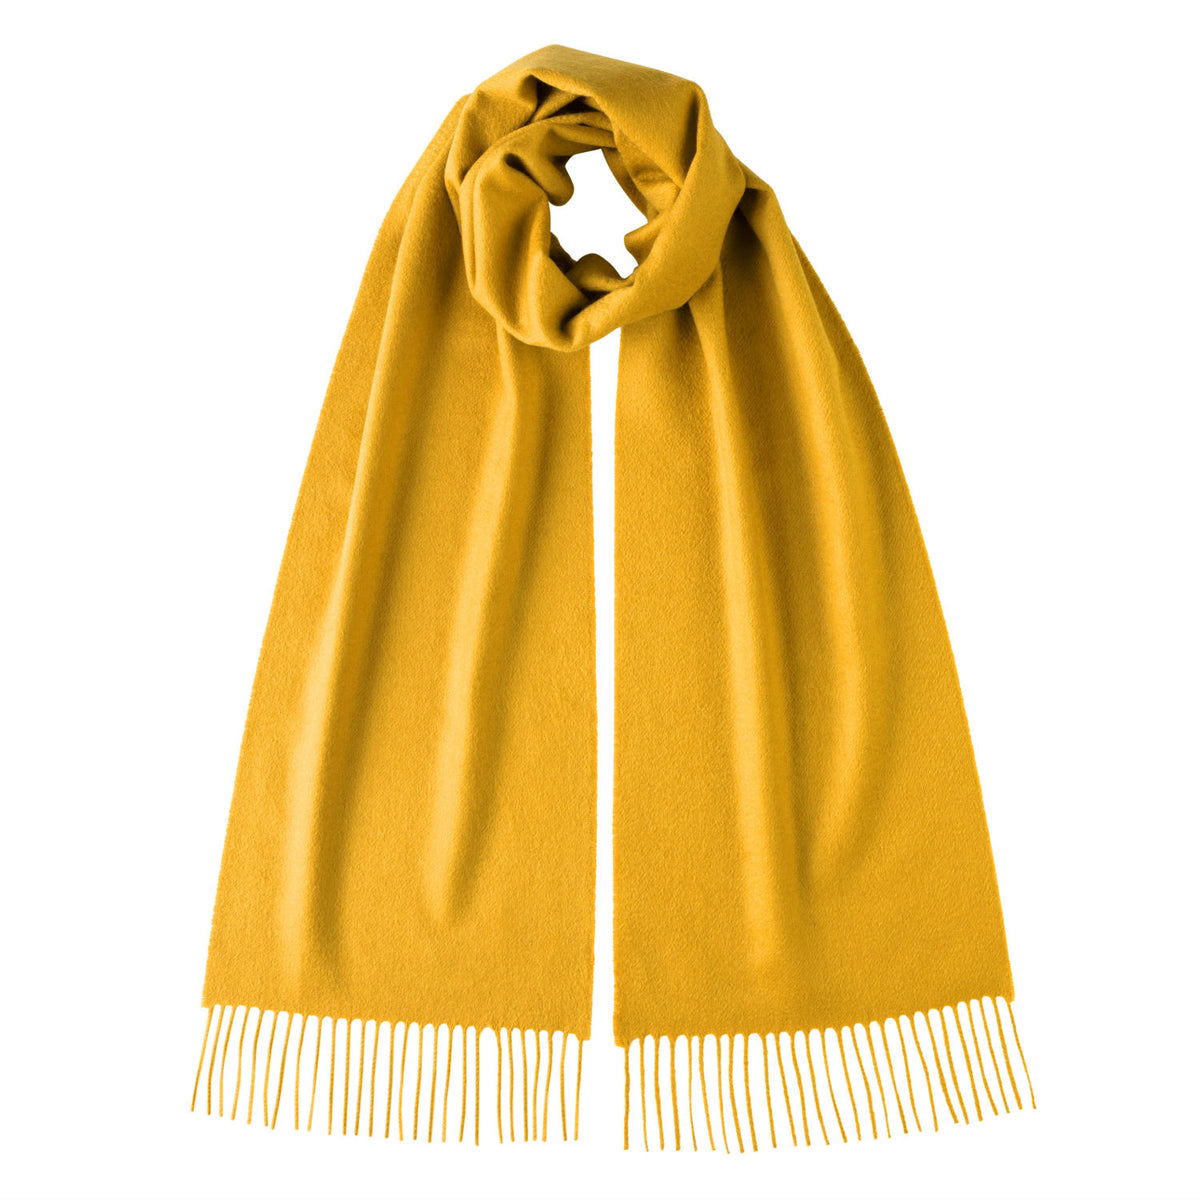 Johnsons of Elgin | Johnston Cashmere | Winter Jasmine Yellow Cashmere Scarf | shop now at The Cashmere Choice | London